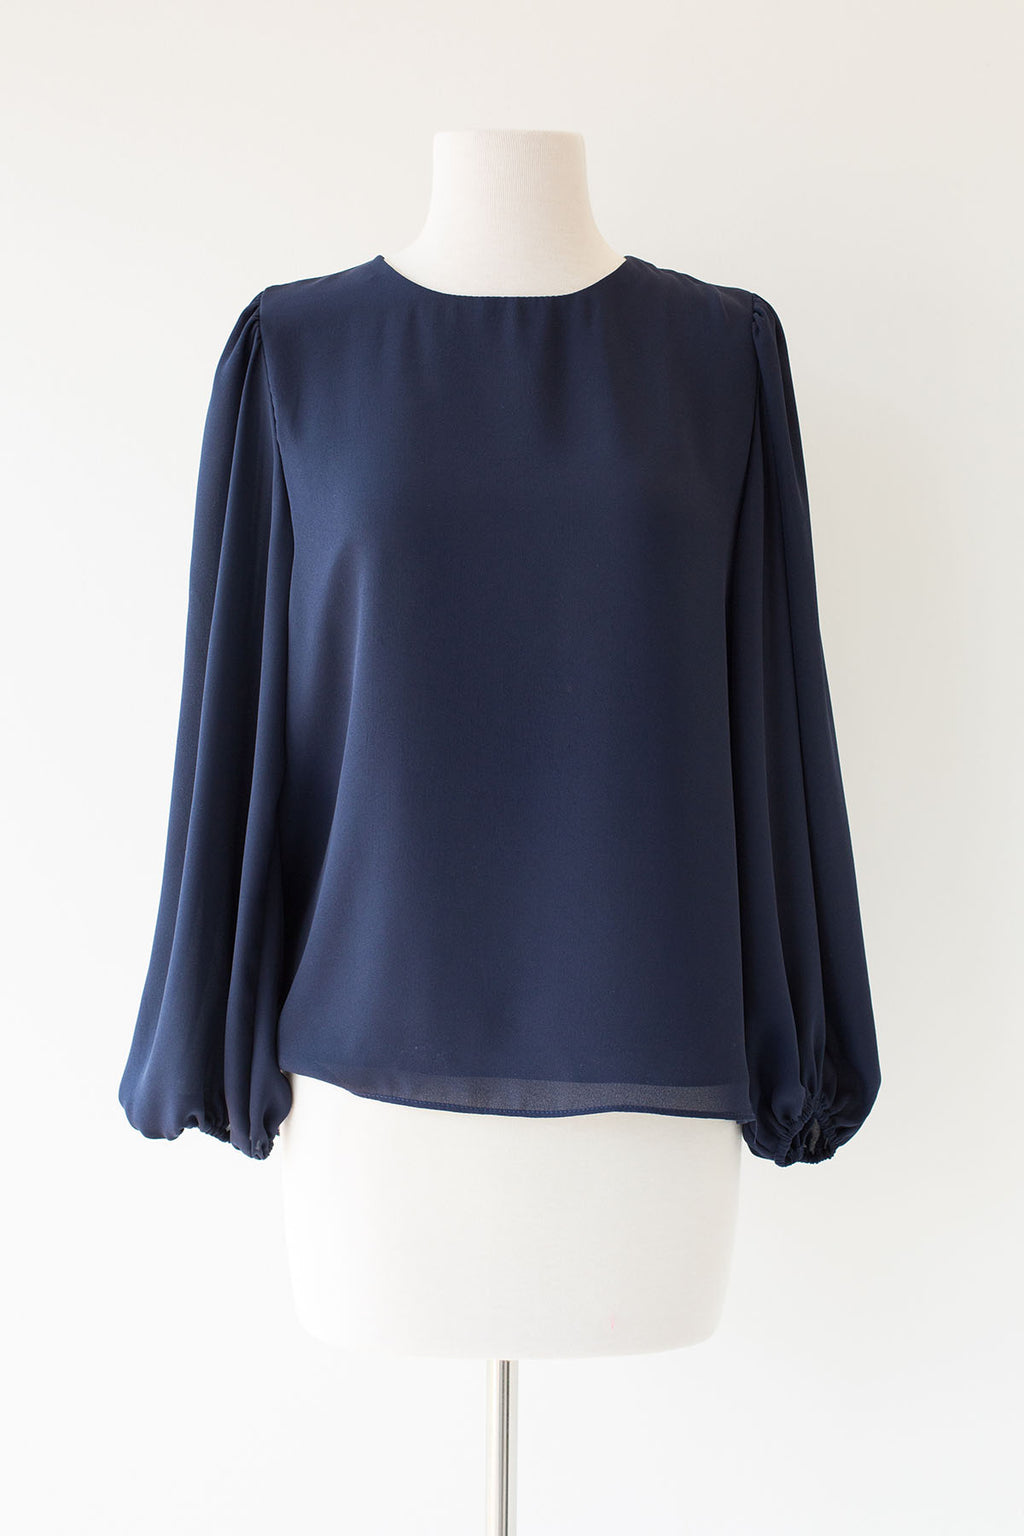 Sienna Puff Sleeve Top